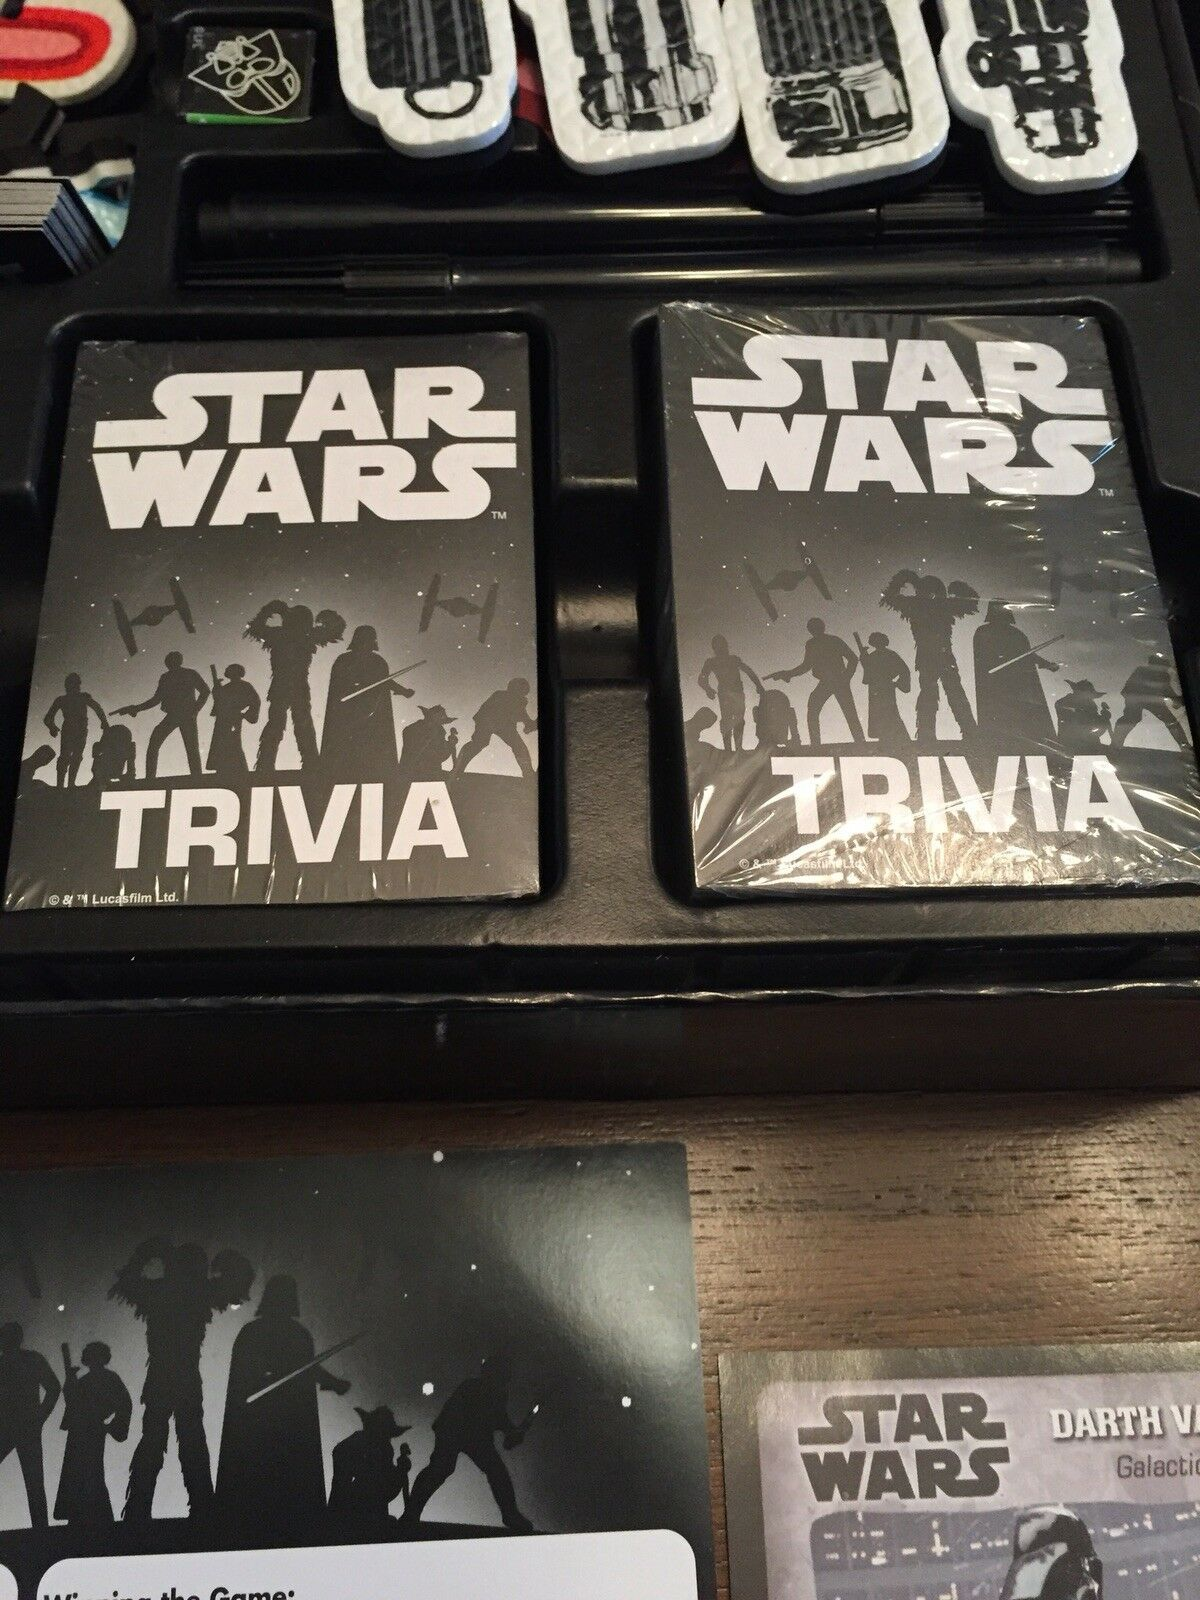 Star Wars Trivia Game Board Game Darth Vader Disney Pre-Owned Great Condition image 5